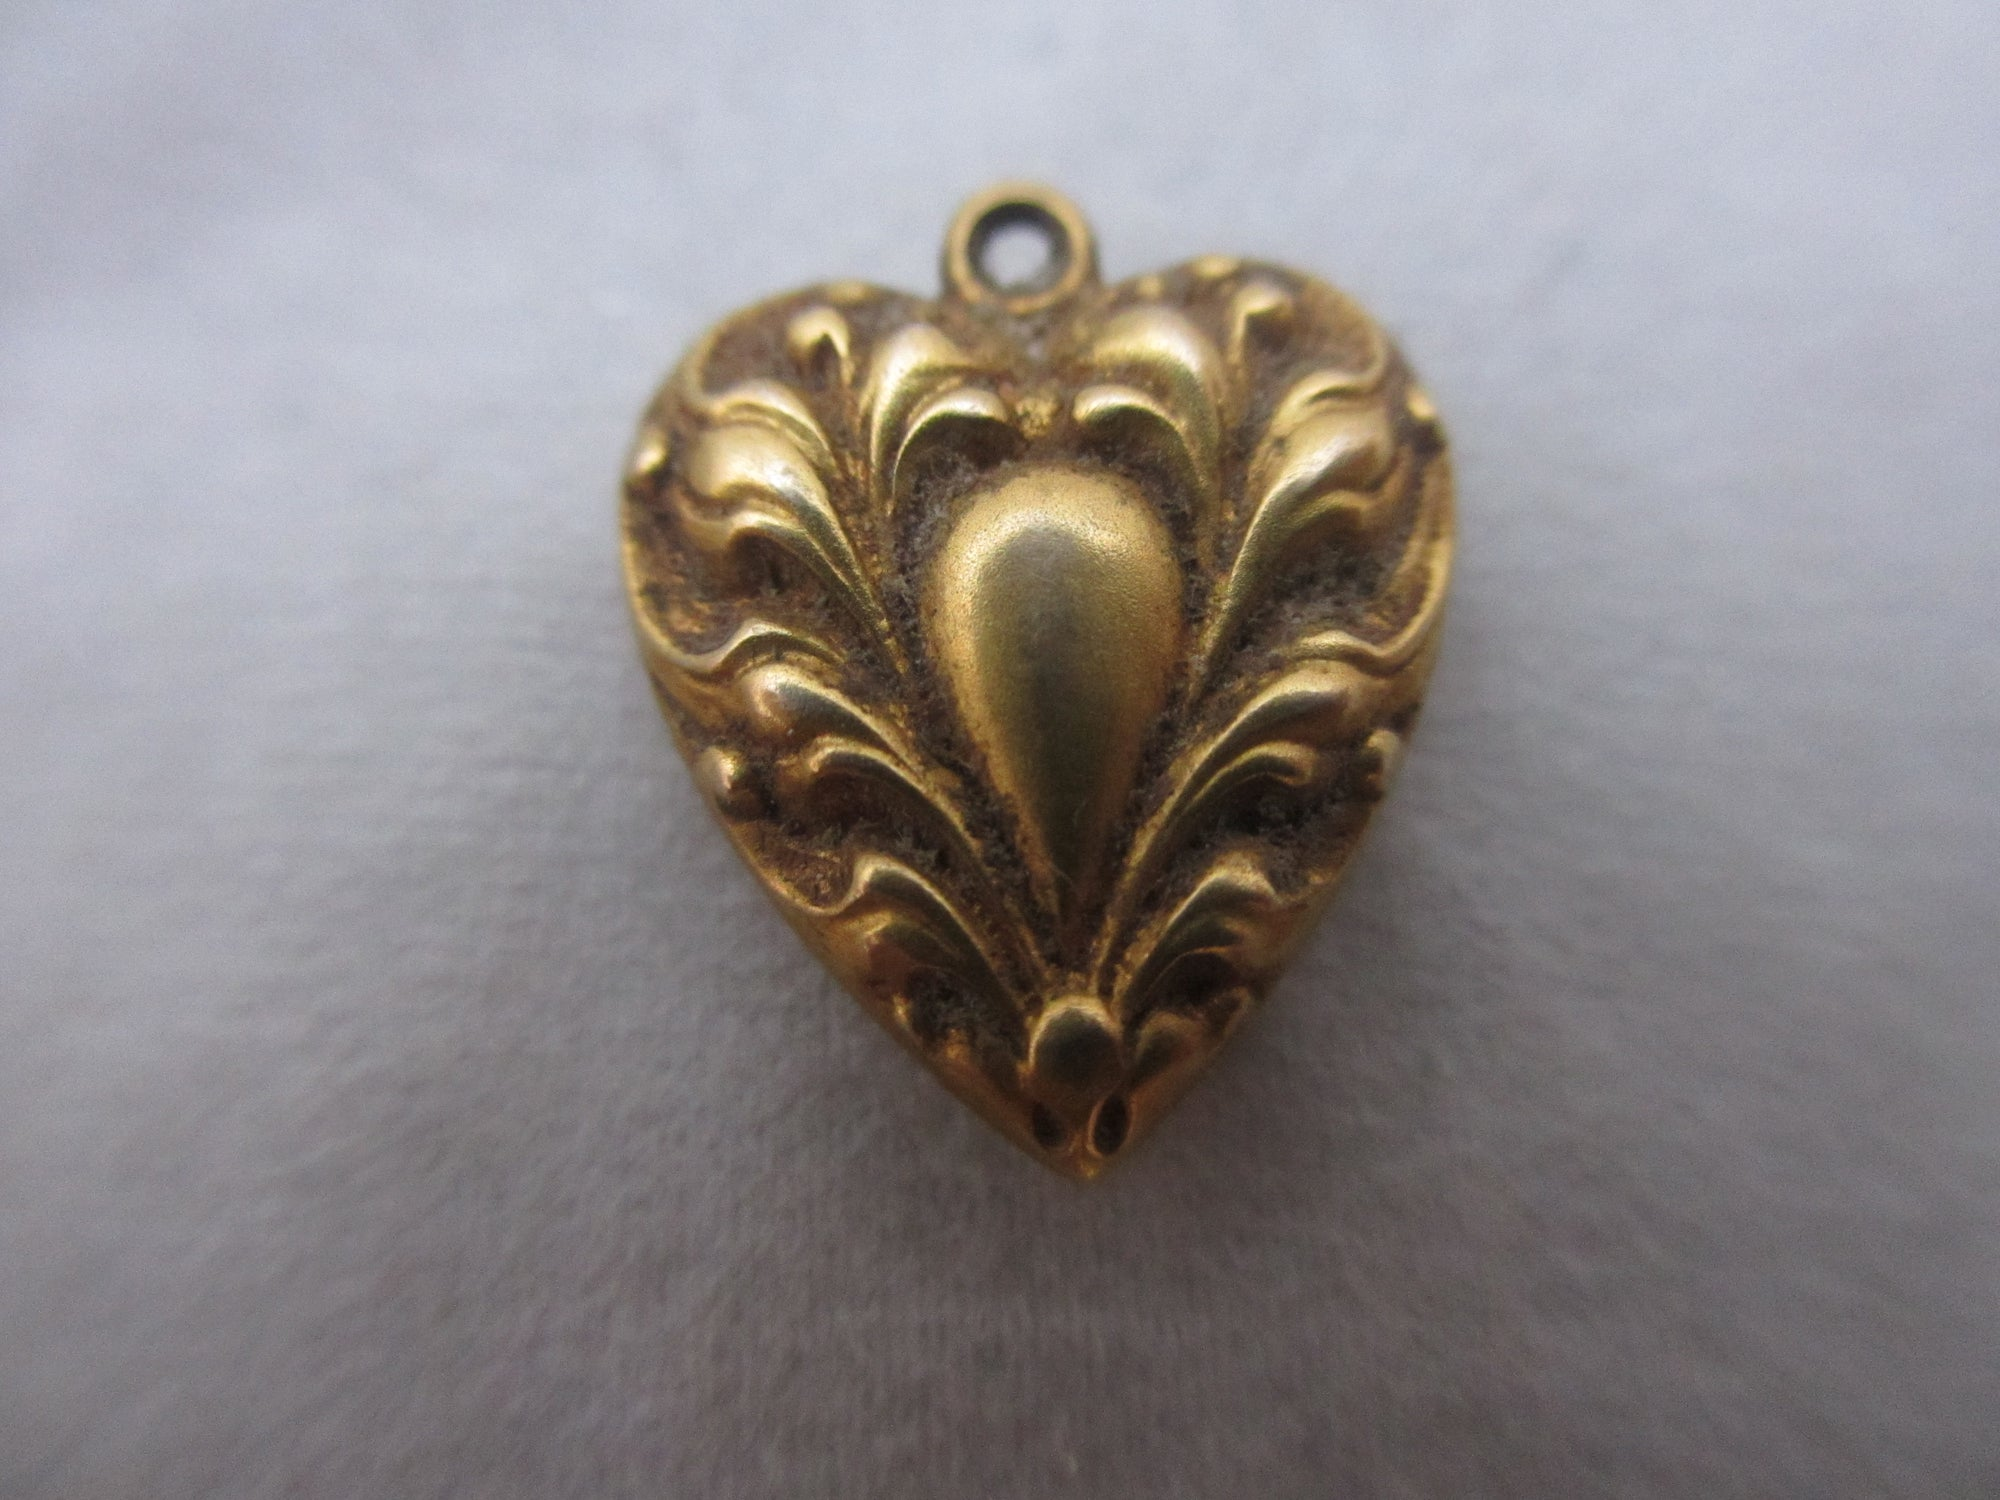 Gold heart For Valentine's Day.